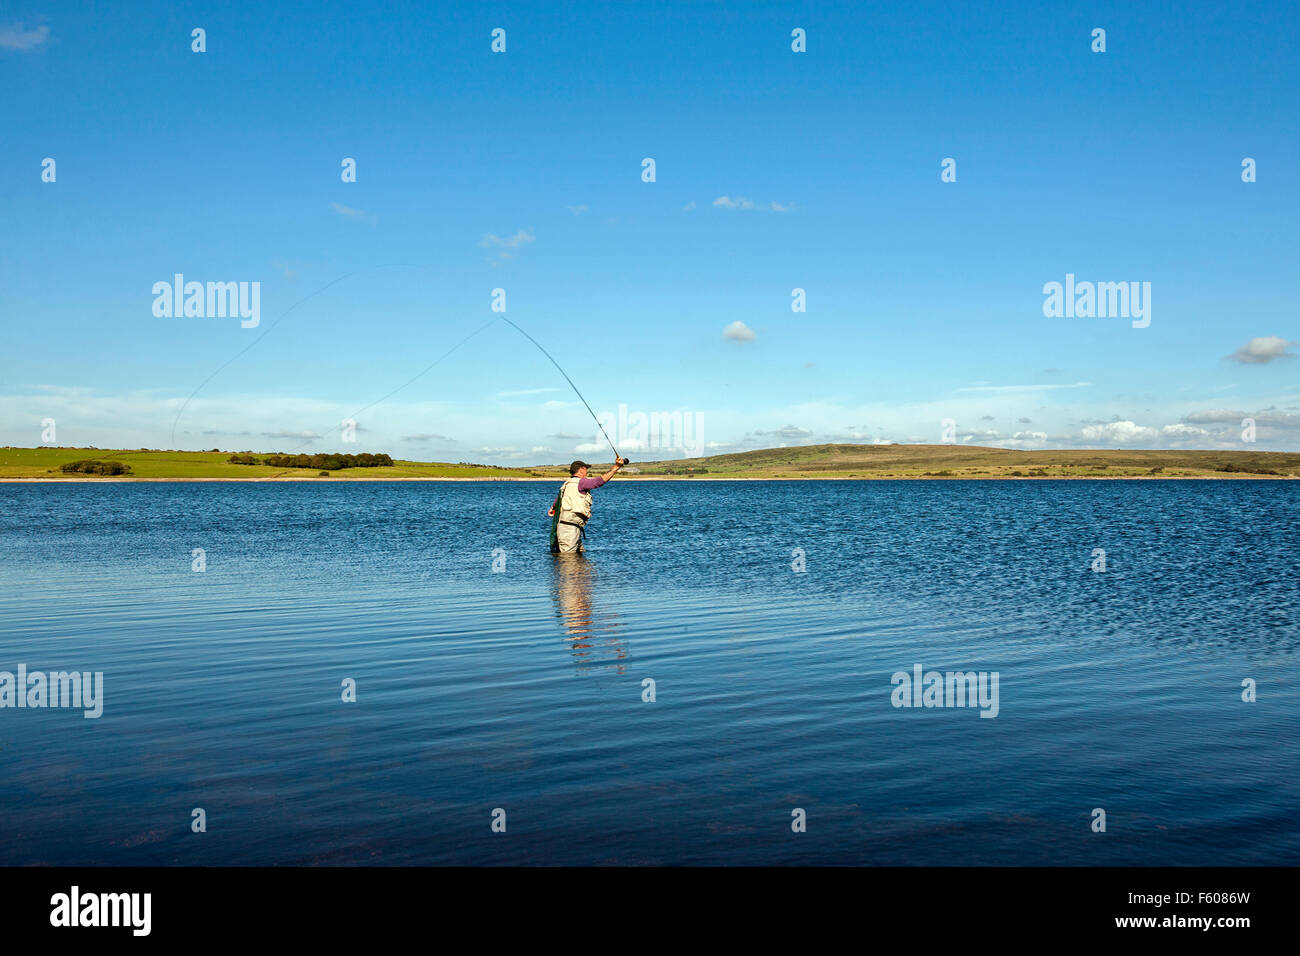 fly fishing on Colliford reservoir lake Bodmin Moor Cornwall lone man casting with rod on still lake blue sky - Stock Image